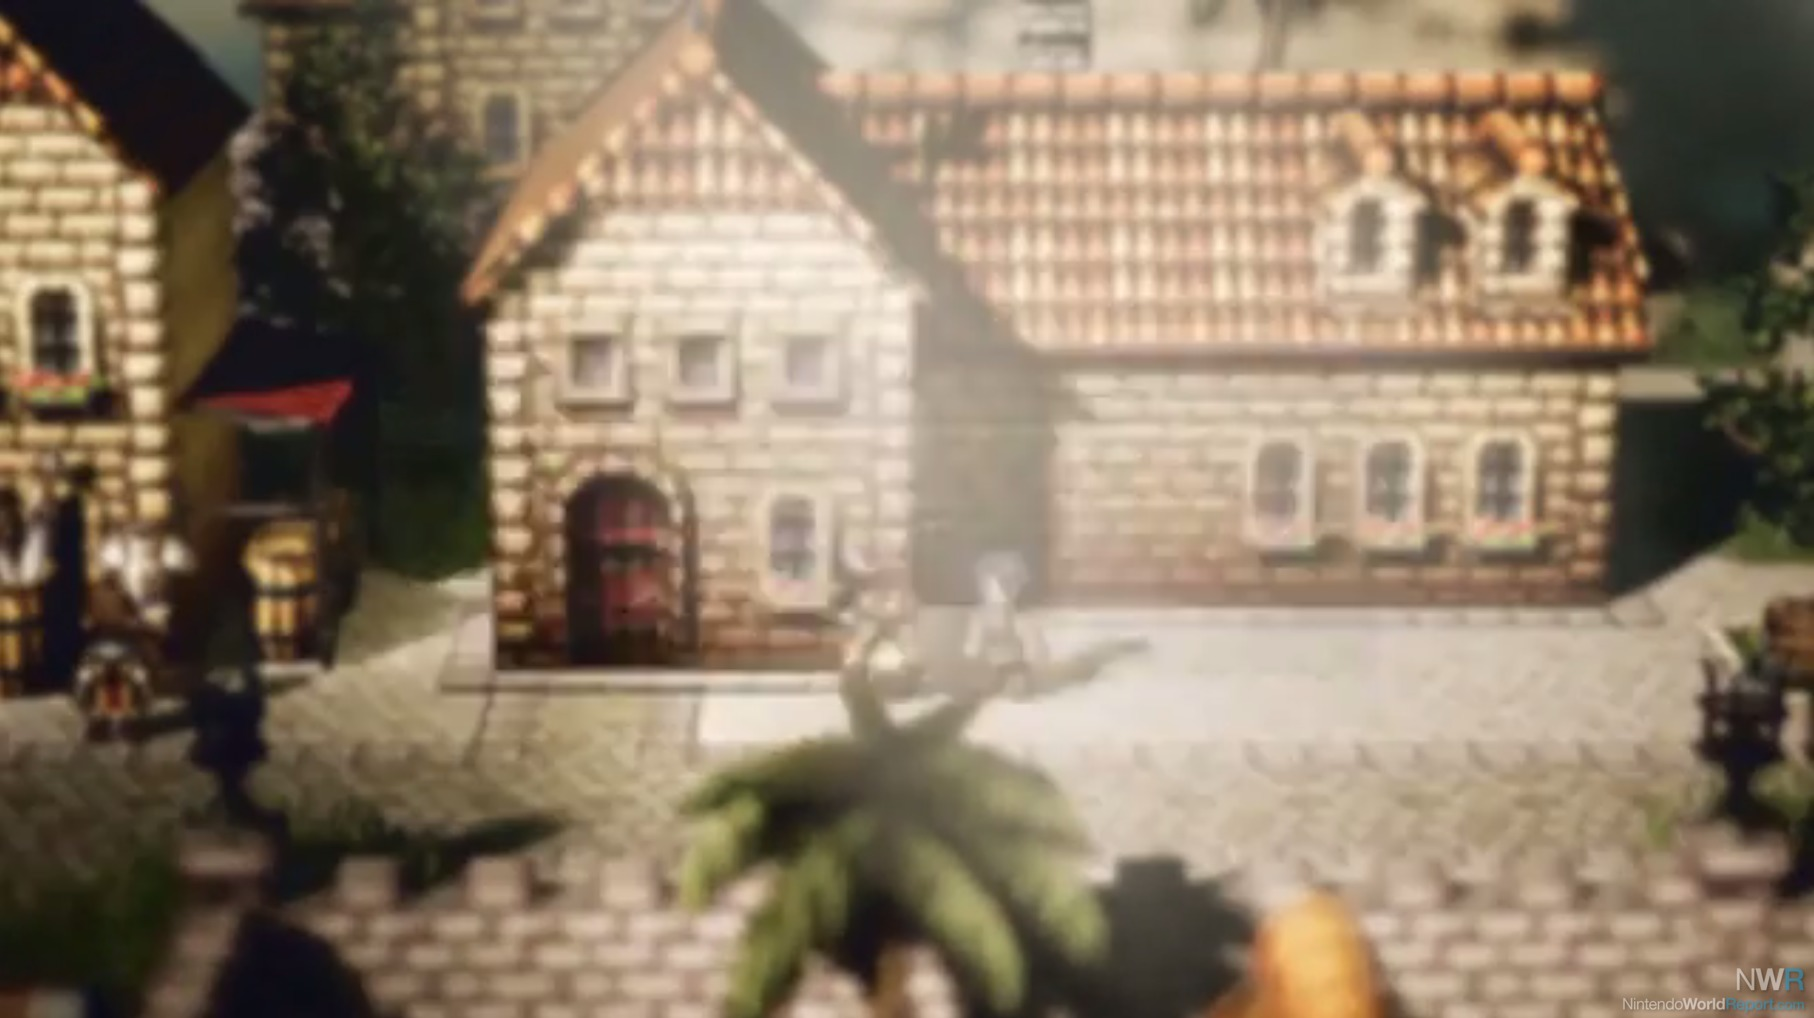 Octopath Traveler launches July 13